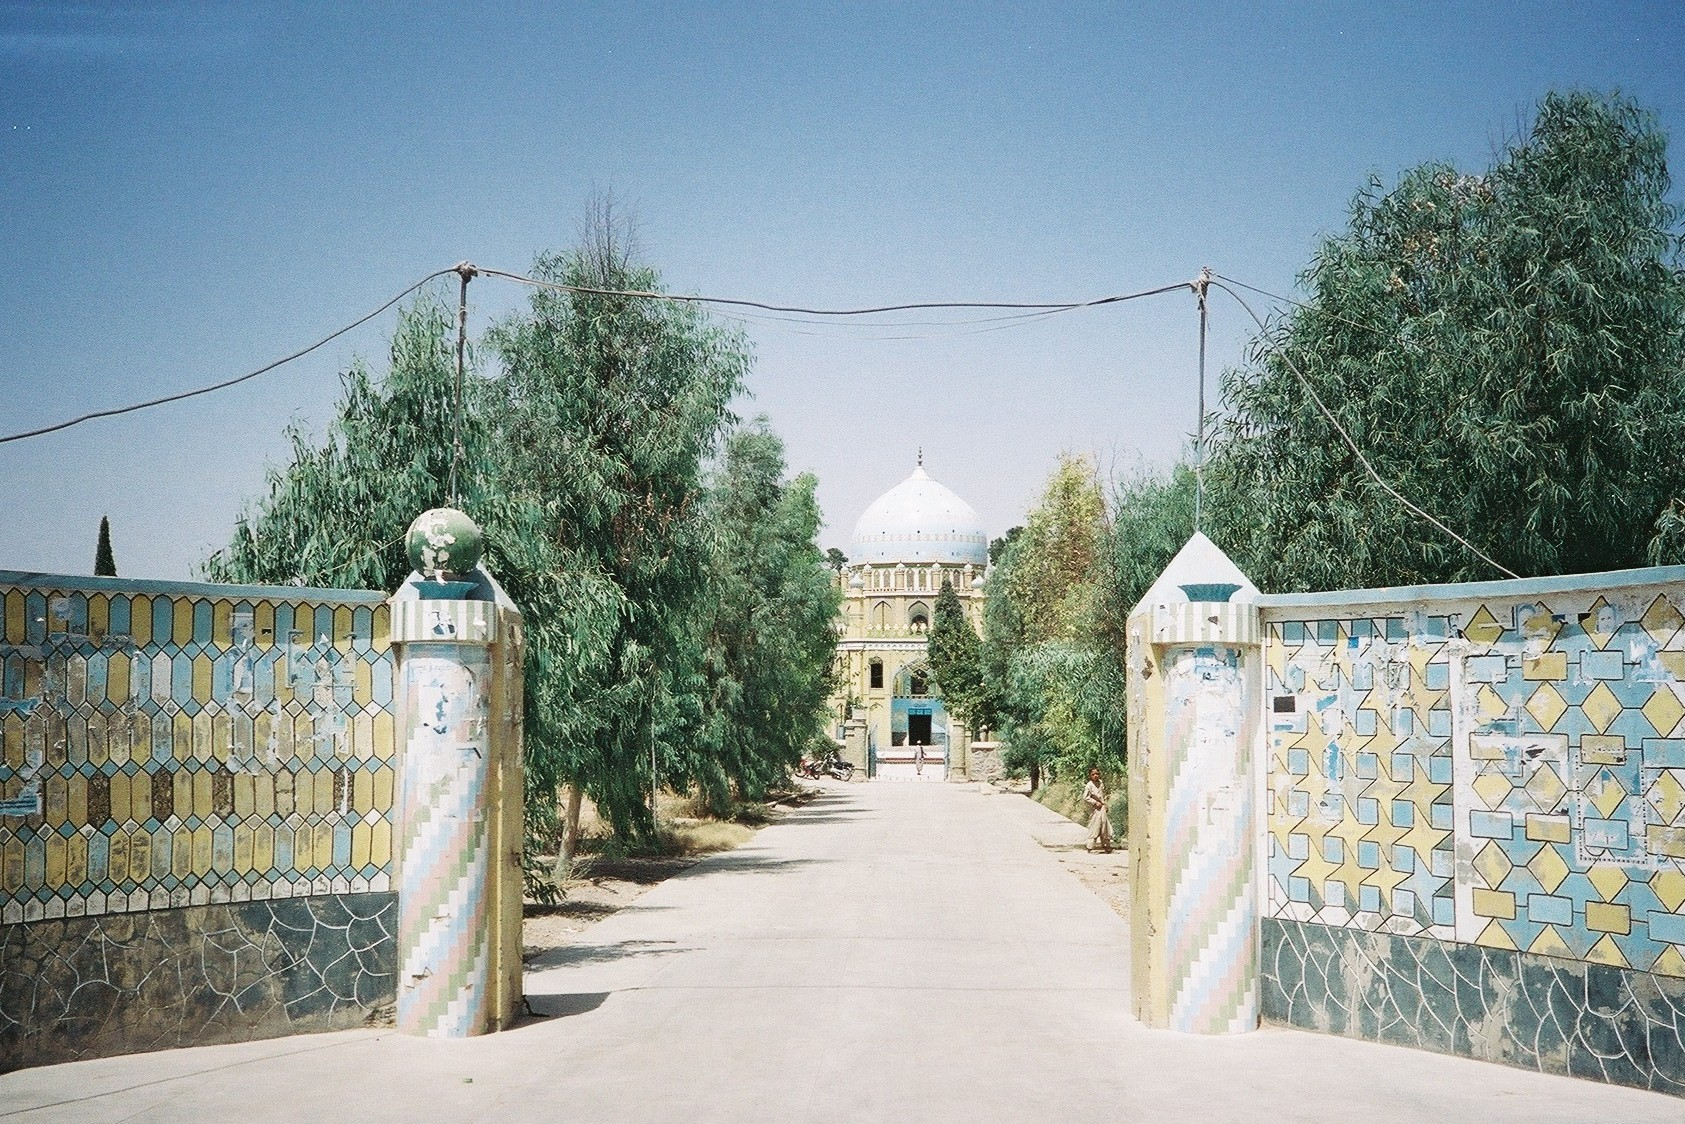 Mausoleum of Mirwais Hotak